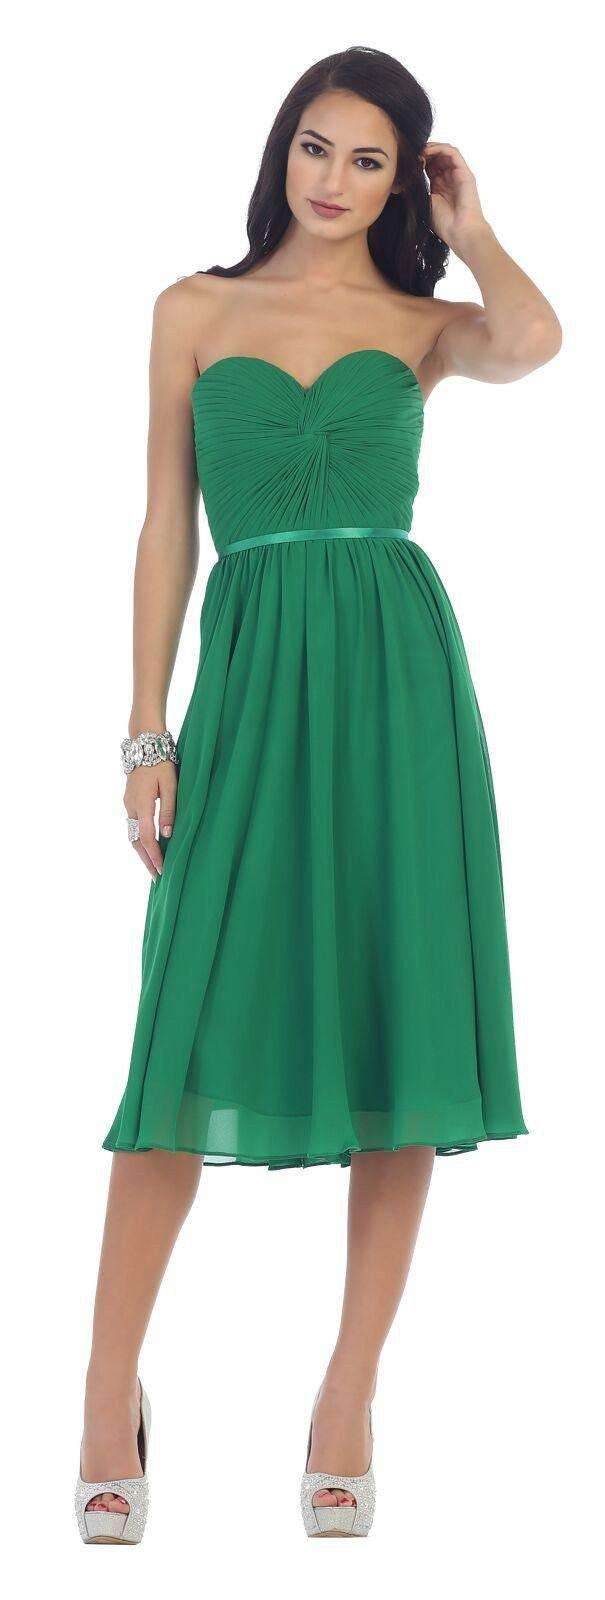 Short Prom Dress Plus Size Formal Cocktail - The Dress Outlet Emerald Green May Queen